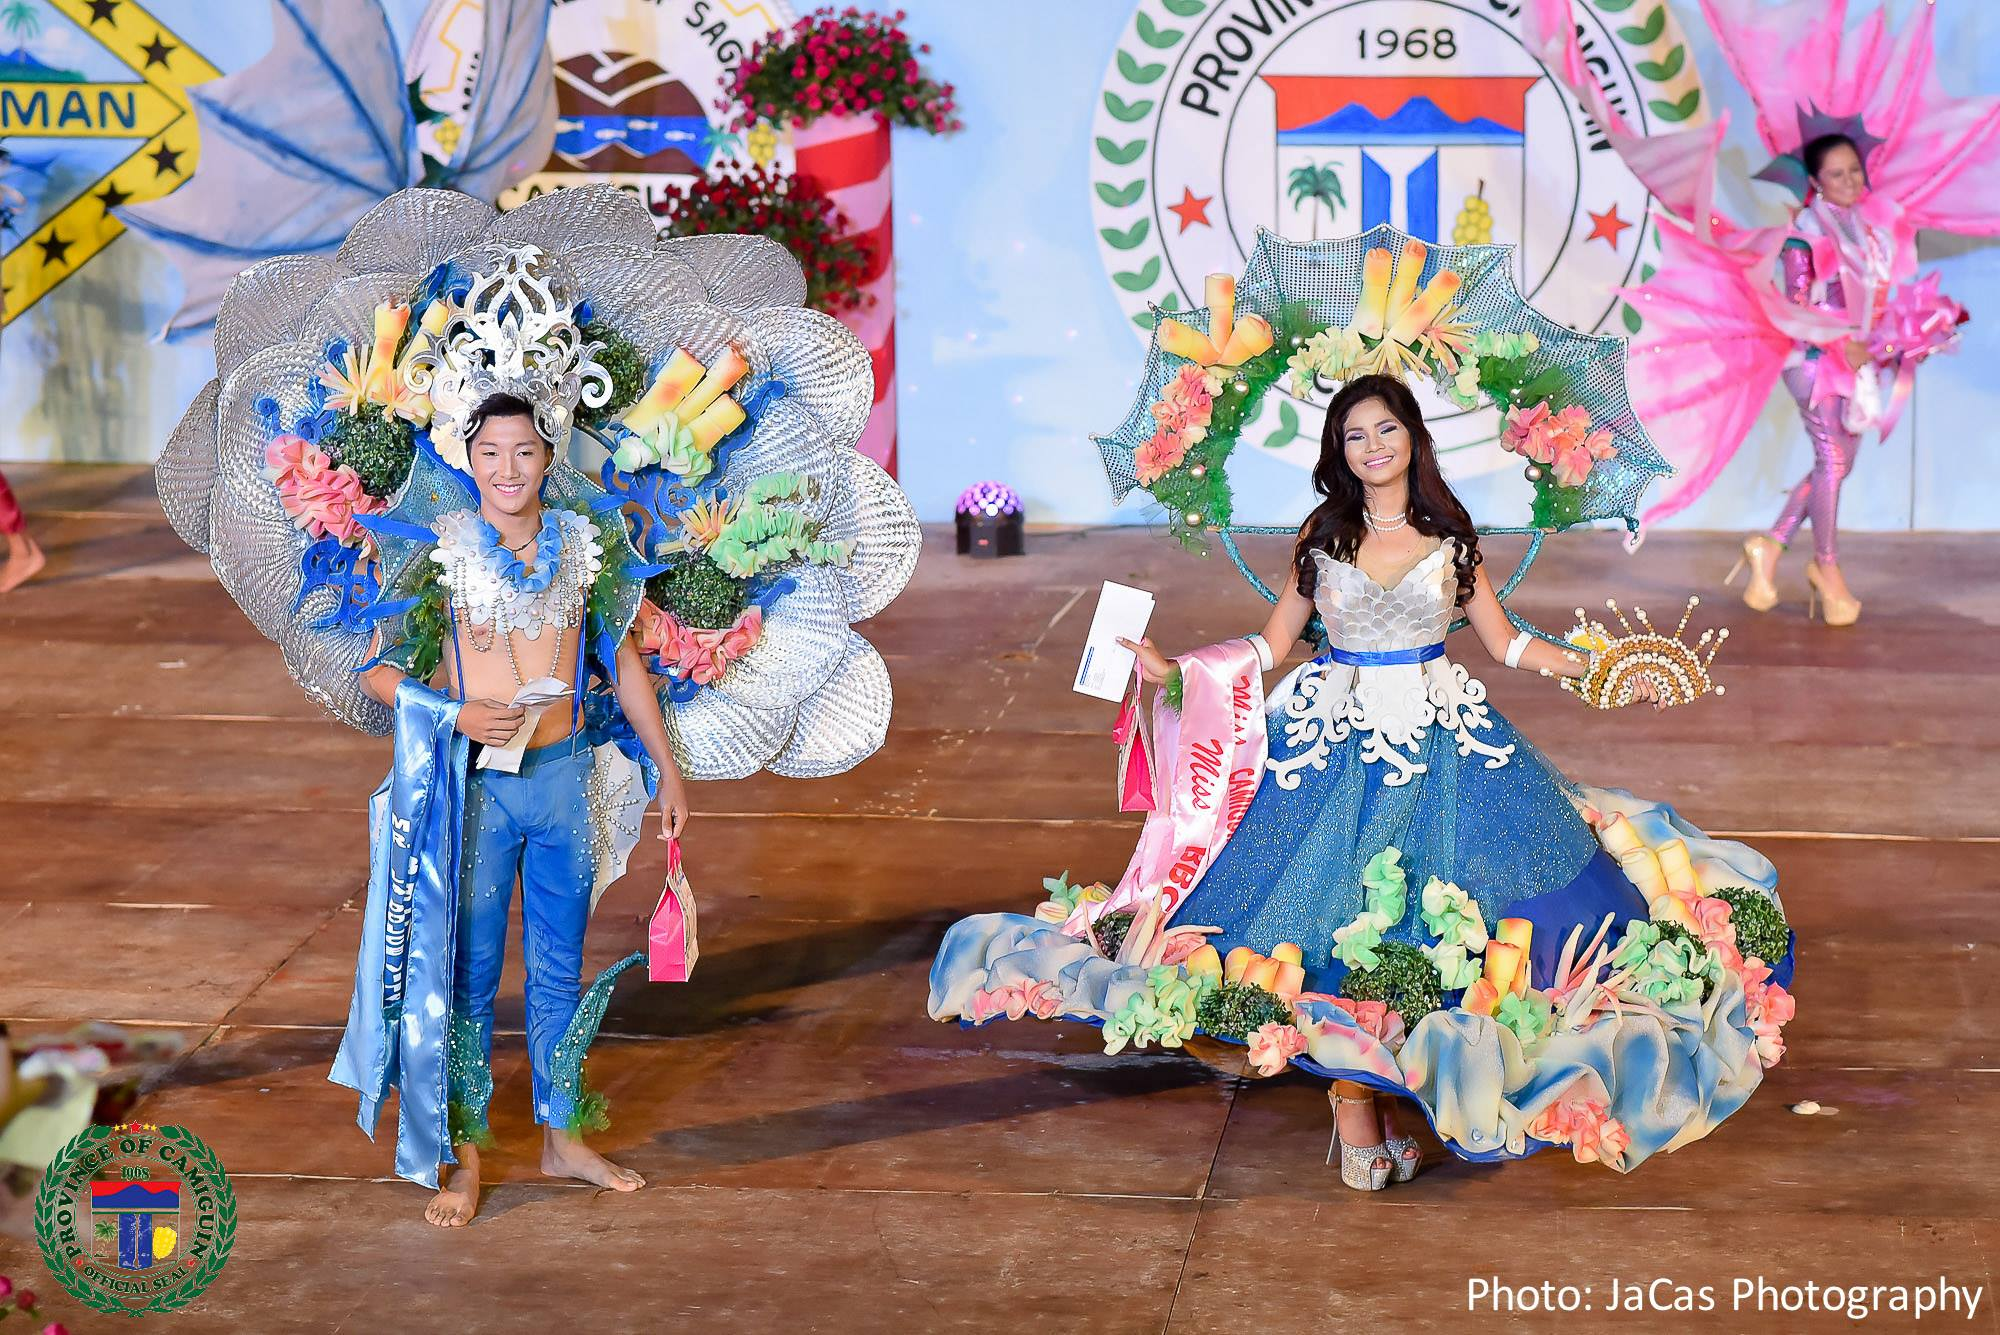 pia northern mindanaotriumphs spell camiguin s 48th founding